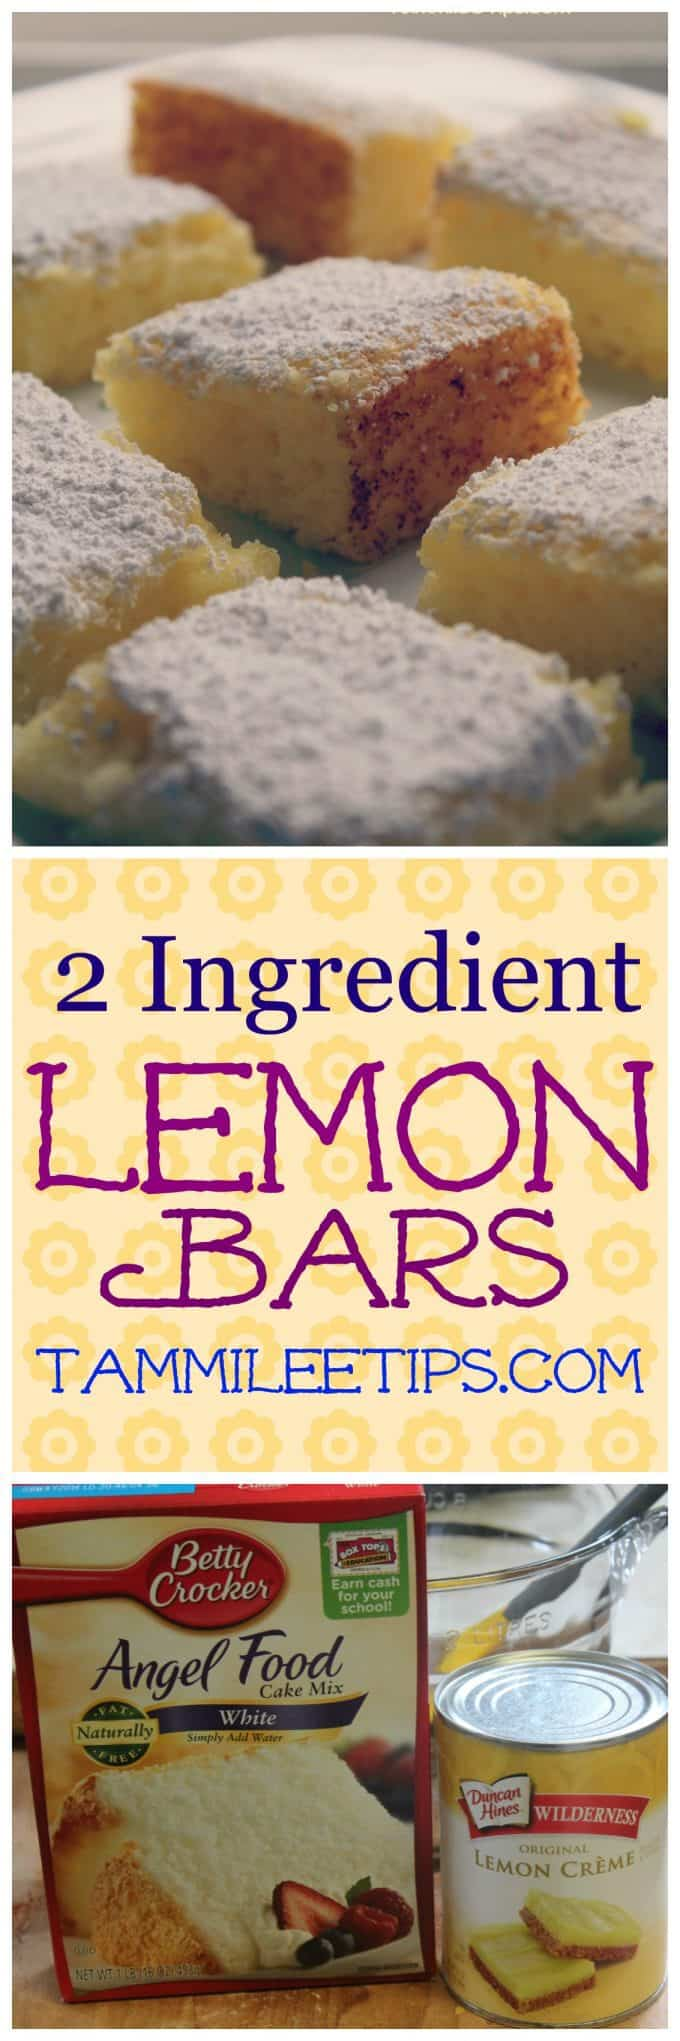 Super easy 2 ingredient Lemon Bars Recipe! No eggs, made with cake mix, and pie filling! This delicious dessert recipe is one of the best easy recipes we have made!